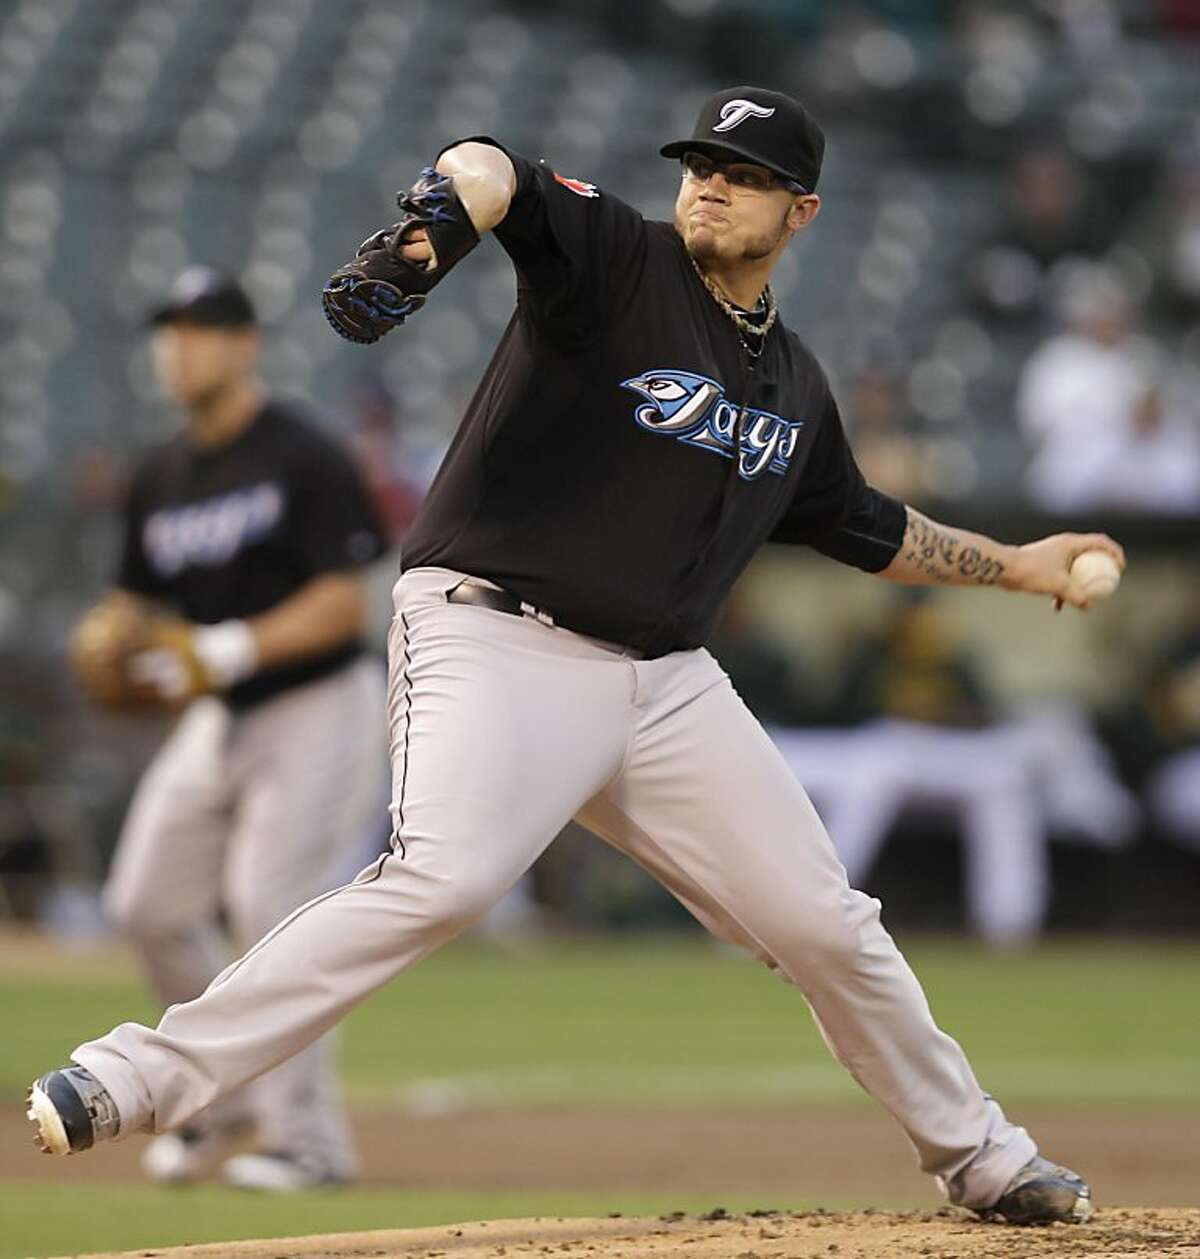 Toronto Blue Jays' Brett Cecil works against the Oakland Athletics during the first inning of a baseball game, Friday, Aug. 19, 2011, in Oakland, Calif. (AP Photo/Ben Margot)